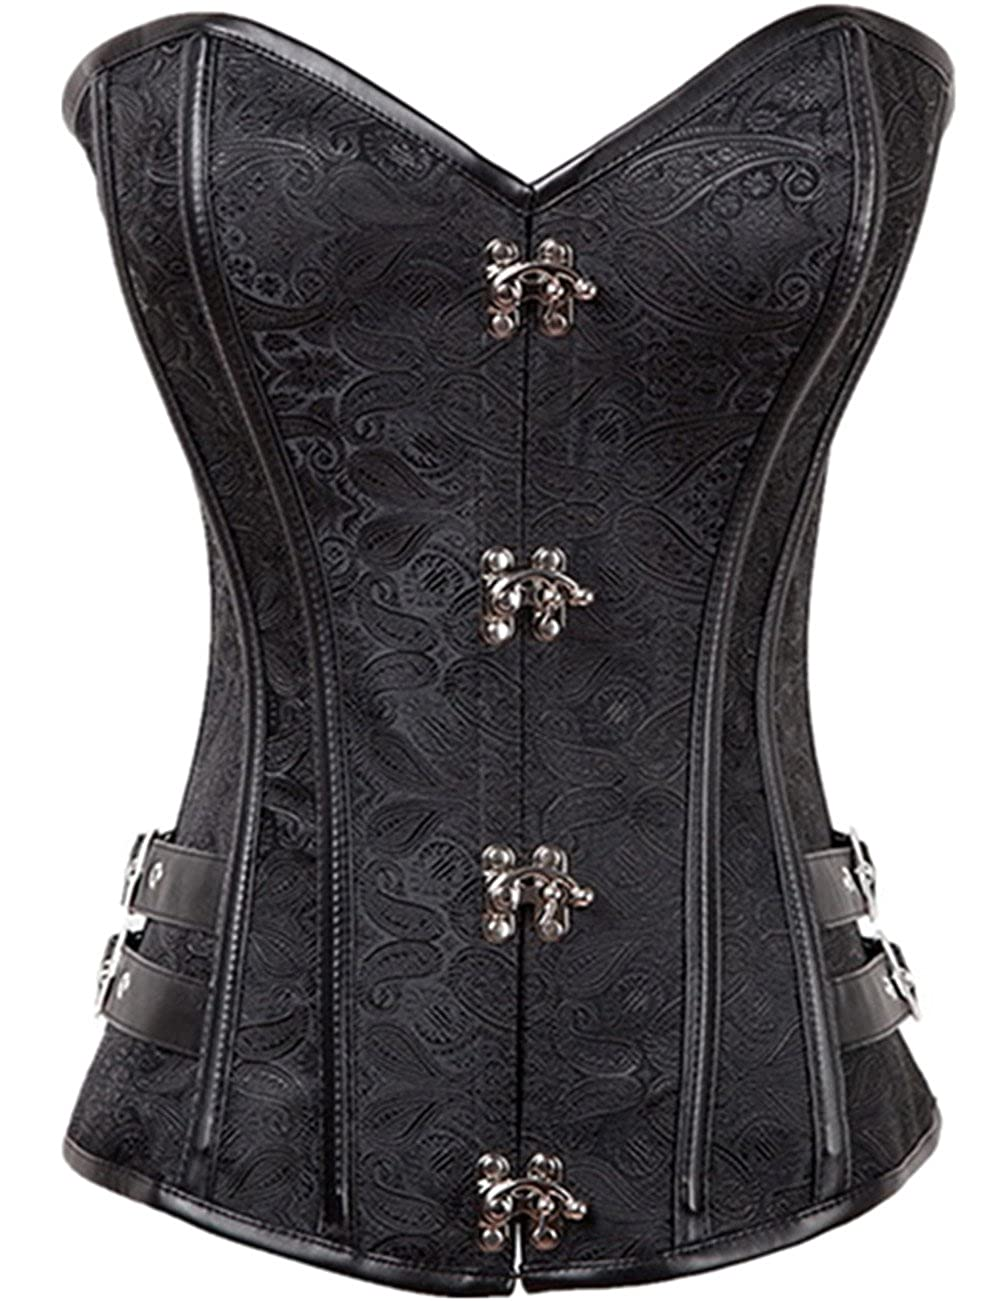 98ce3837e47 SELUXU Womens Waist Trainer Brocade Bustiers Lace up Cincher Underbust  Steampunk Corsets  Amazon.co.uk  Clothing